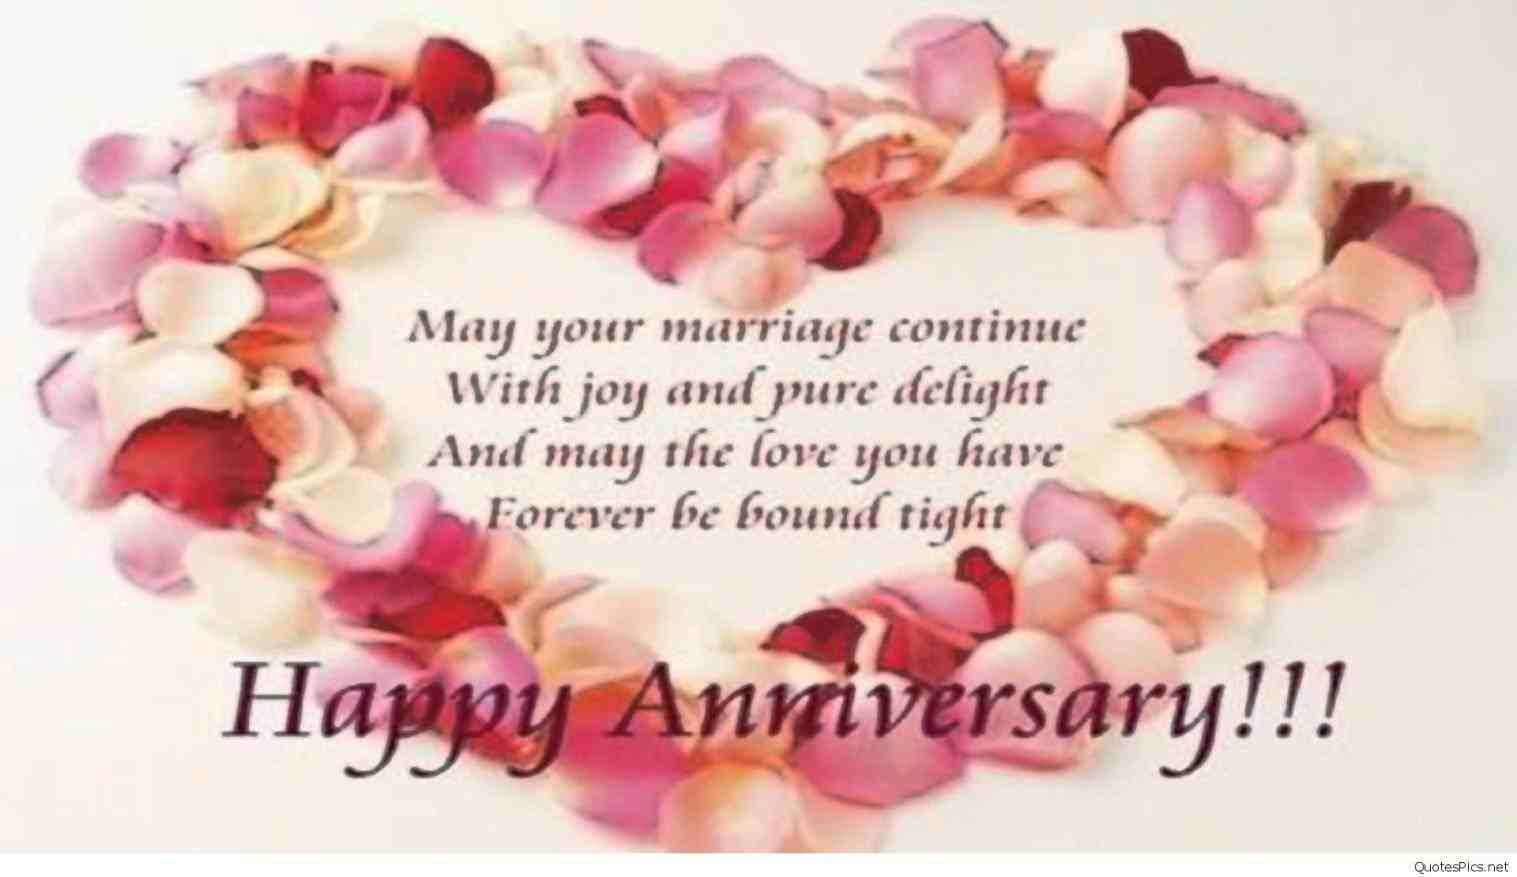 Wedding Anniversary Wishes Images Free Download Posted By Ethan Cunningham